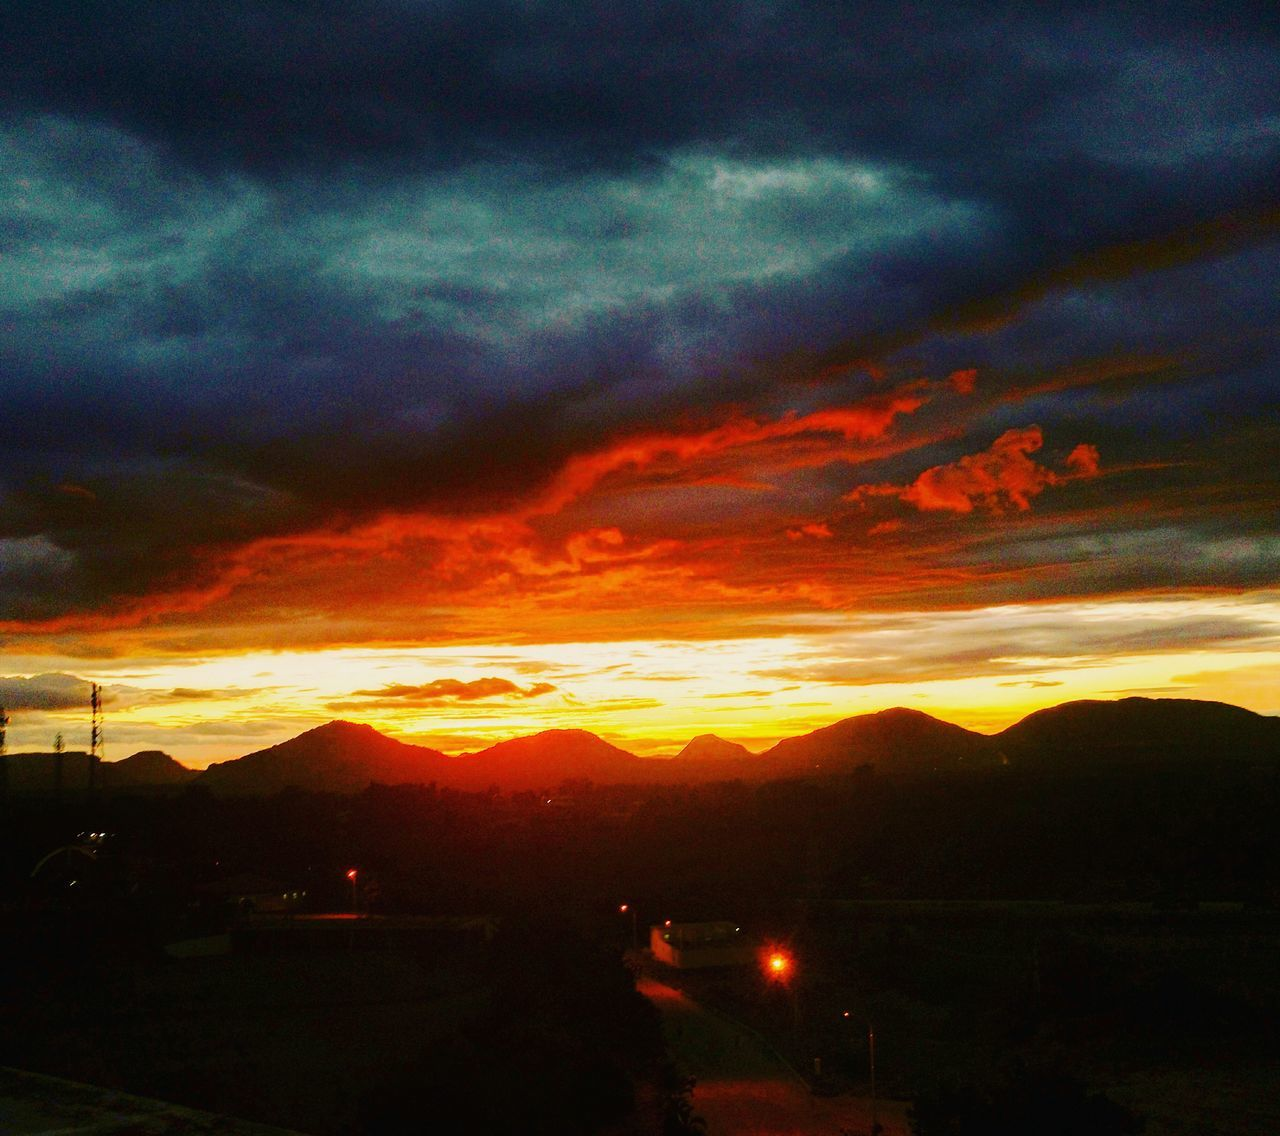 sunset, cloud - sky, sky, dramatic sky, orange color, nature, beauty in nature, scenics, silhouette, no people, tranquility, tranquil scene, outdoors, storm cloud, mountain, landscape, city